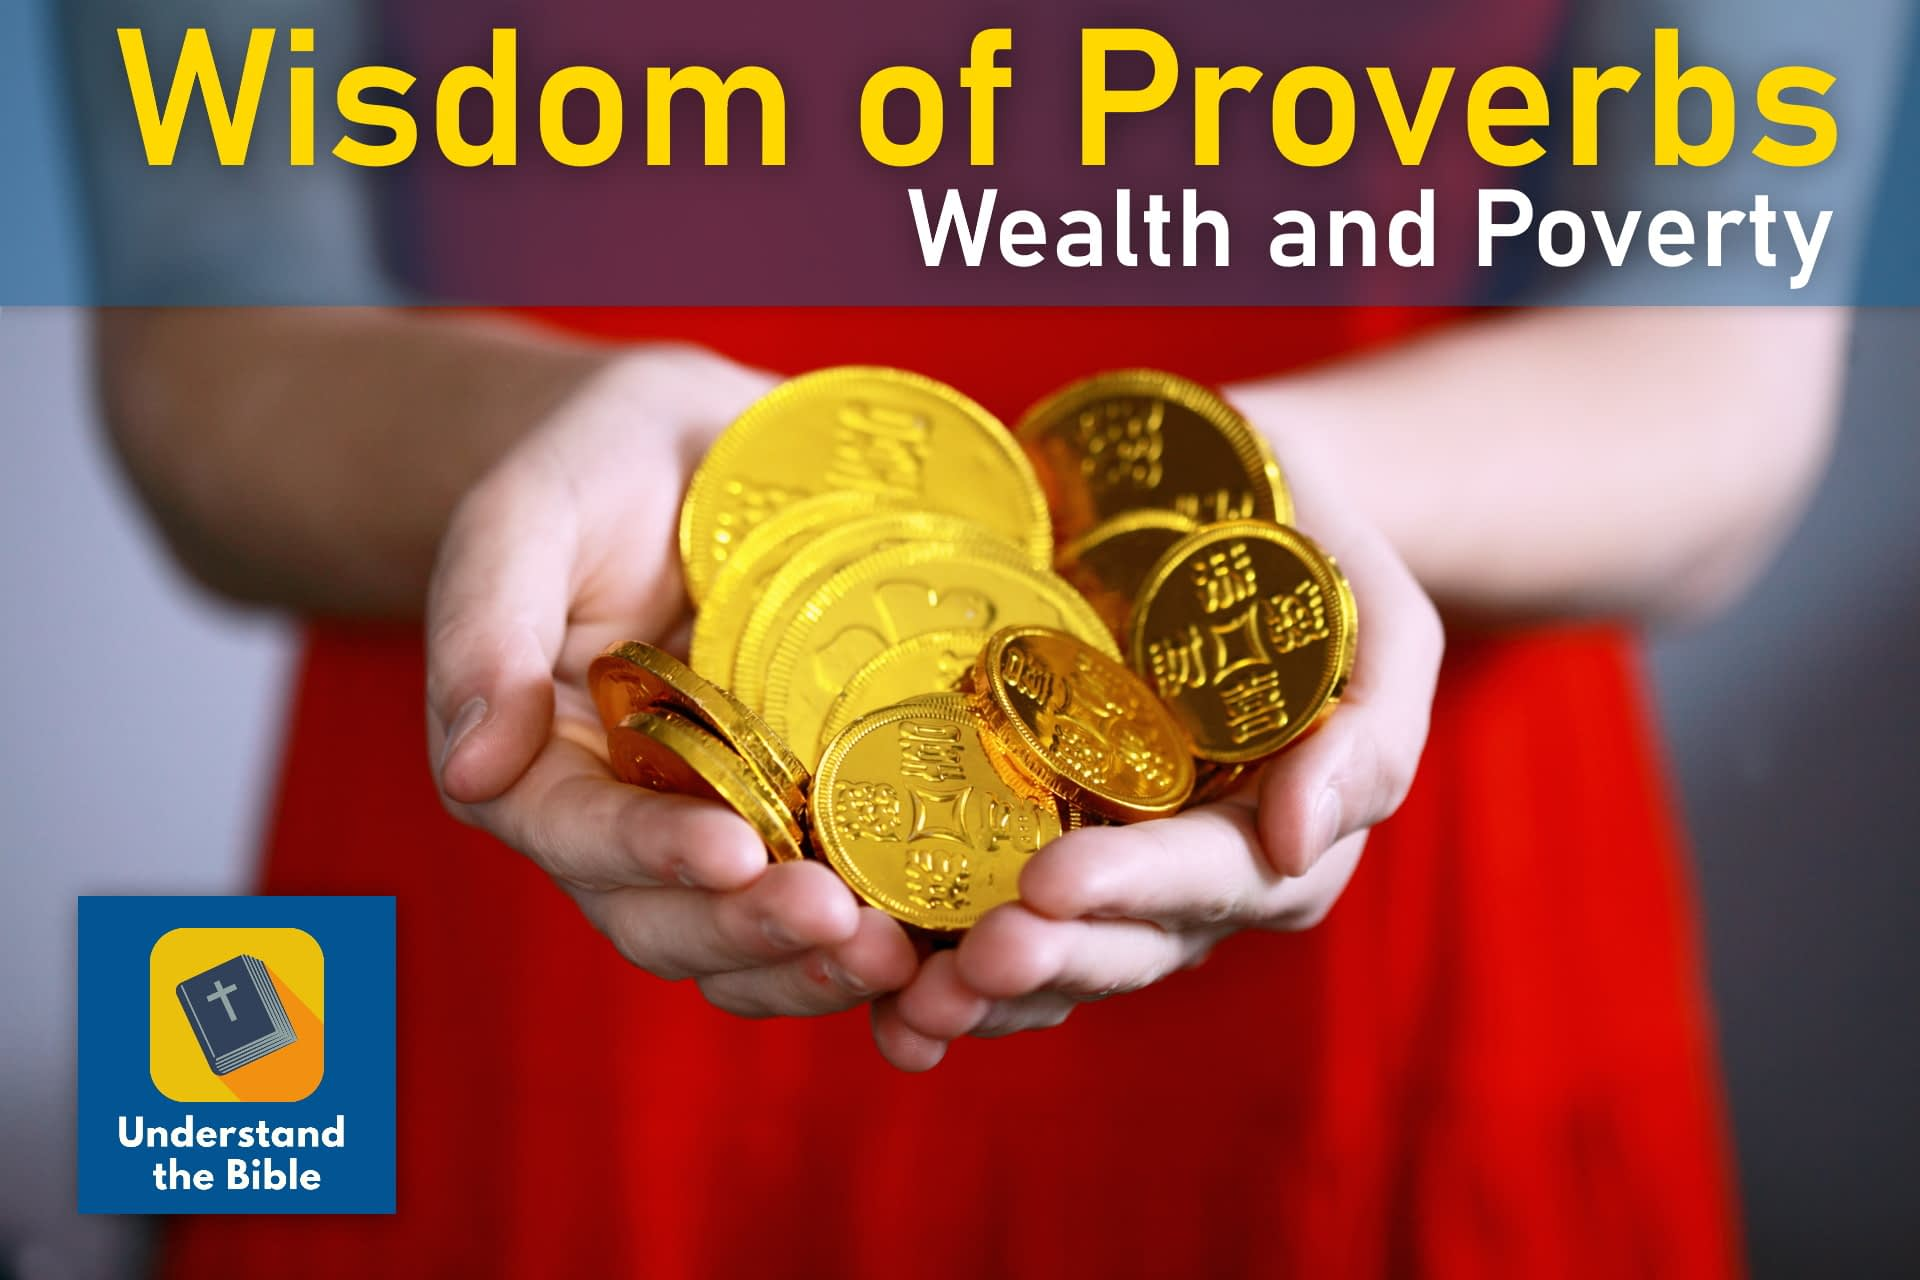 Wisdom of Proverbs: Wealth and Poverty